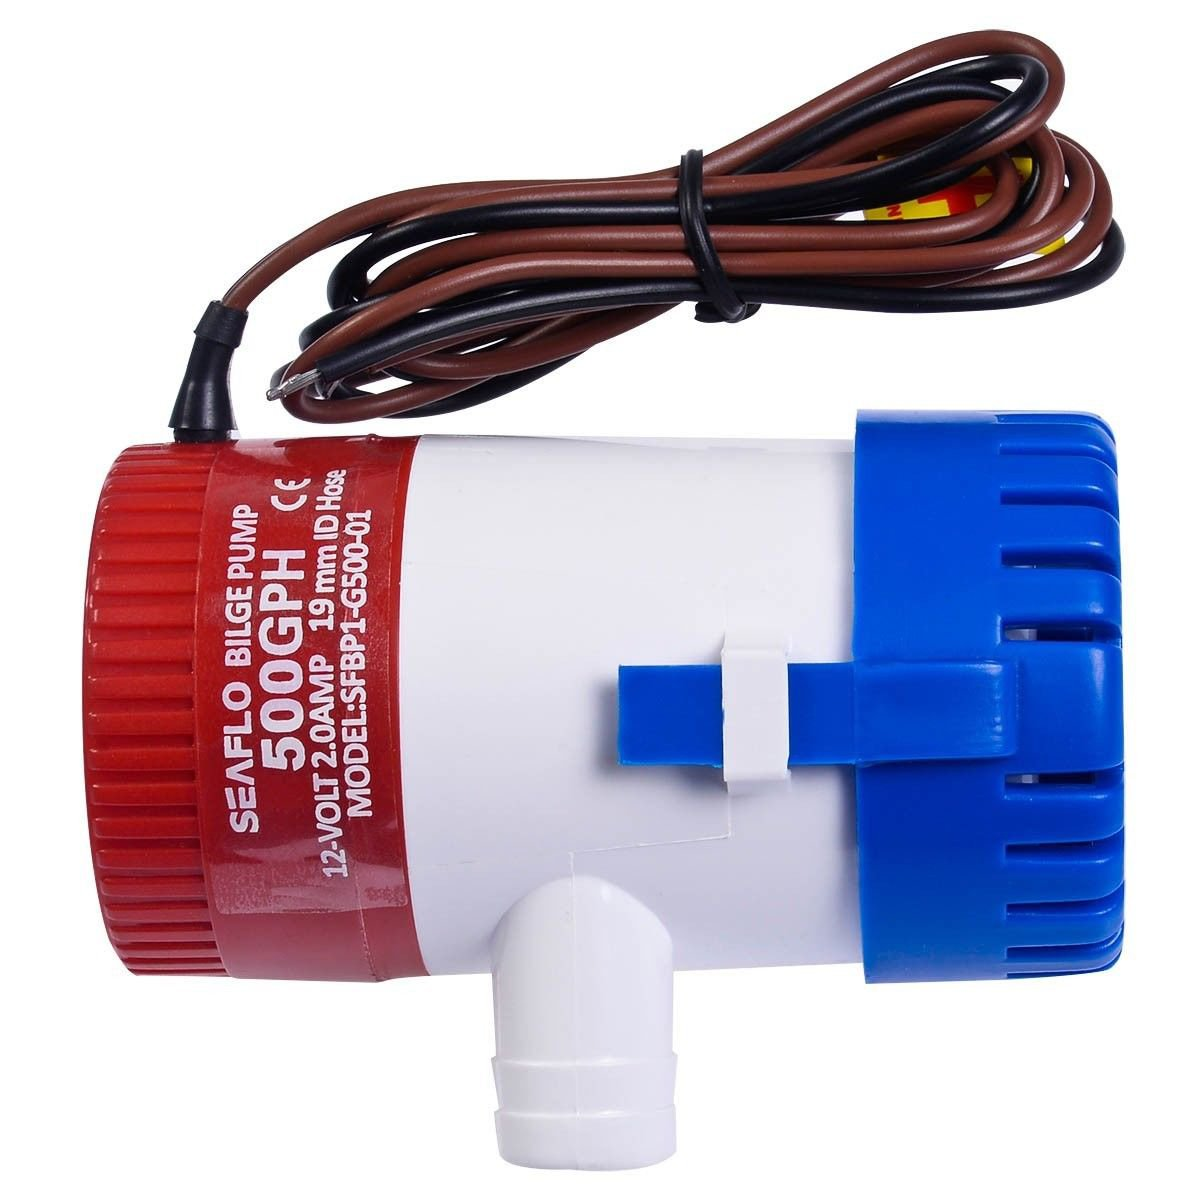 12V 2.0A 500 GPH Electric Bilge Pump Marine Boat Yacht Submersible 3-4 Hose